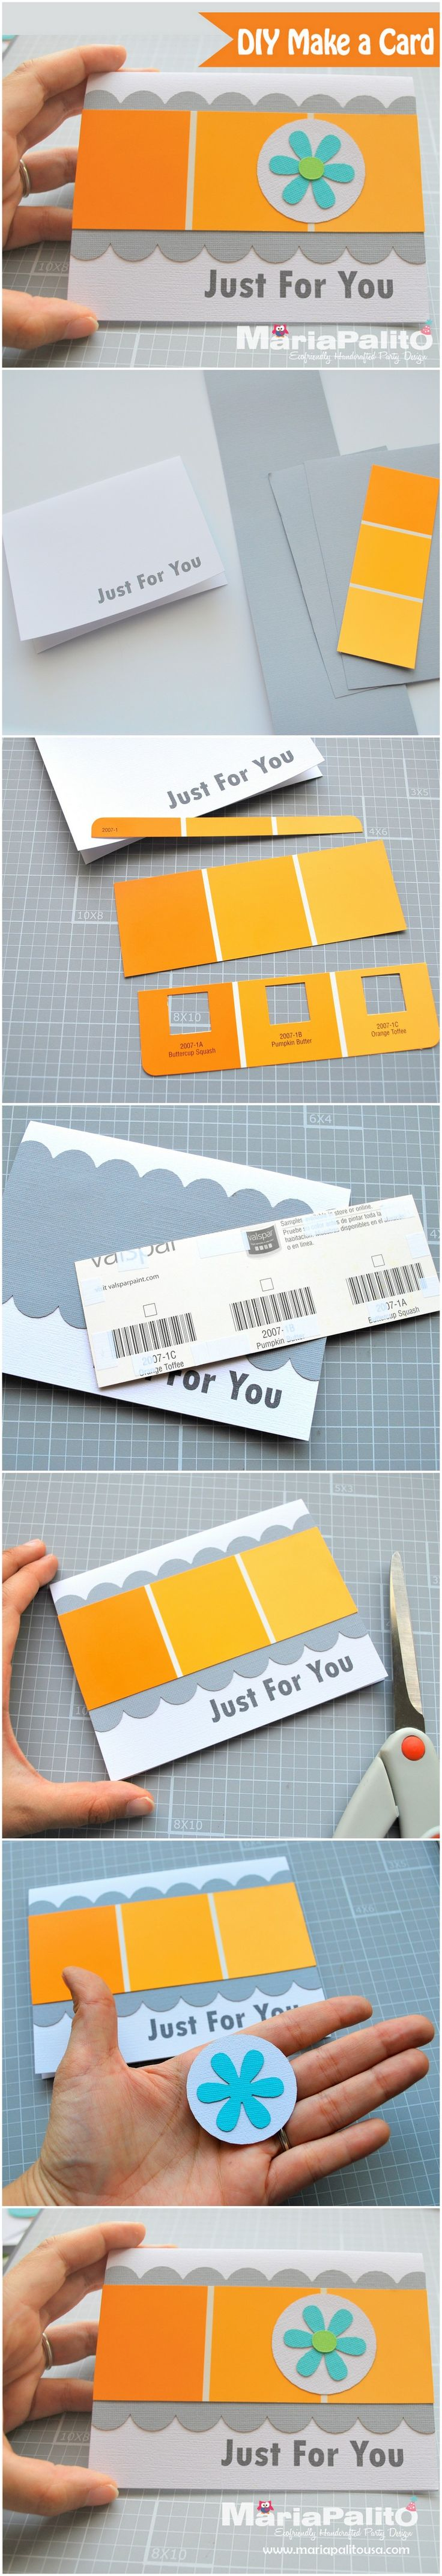 Diy Make A Card Using Paint Sample Cards